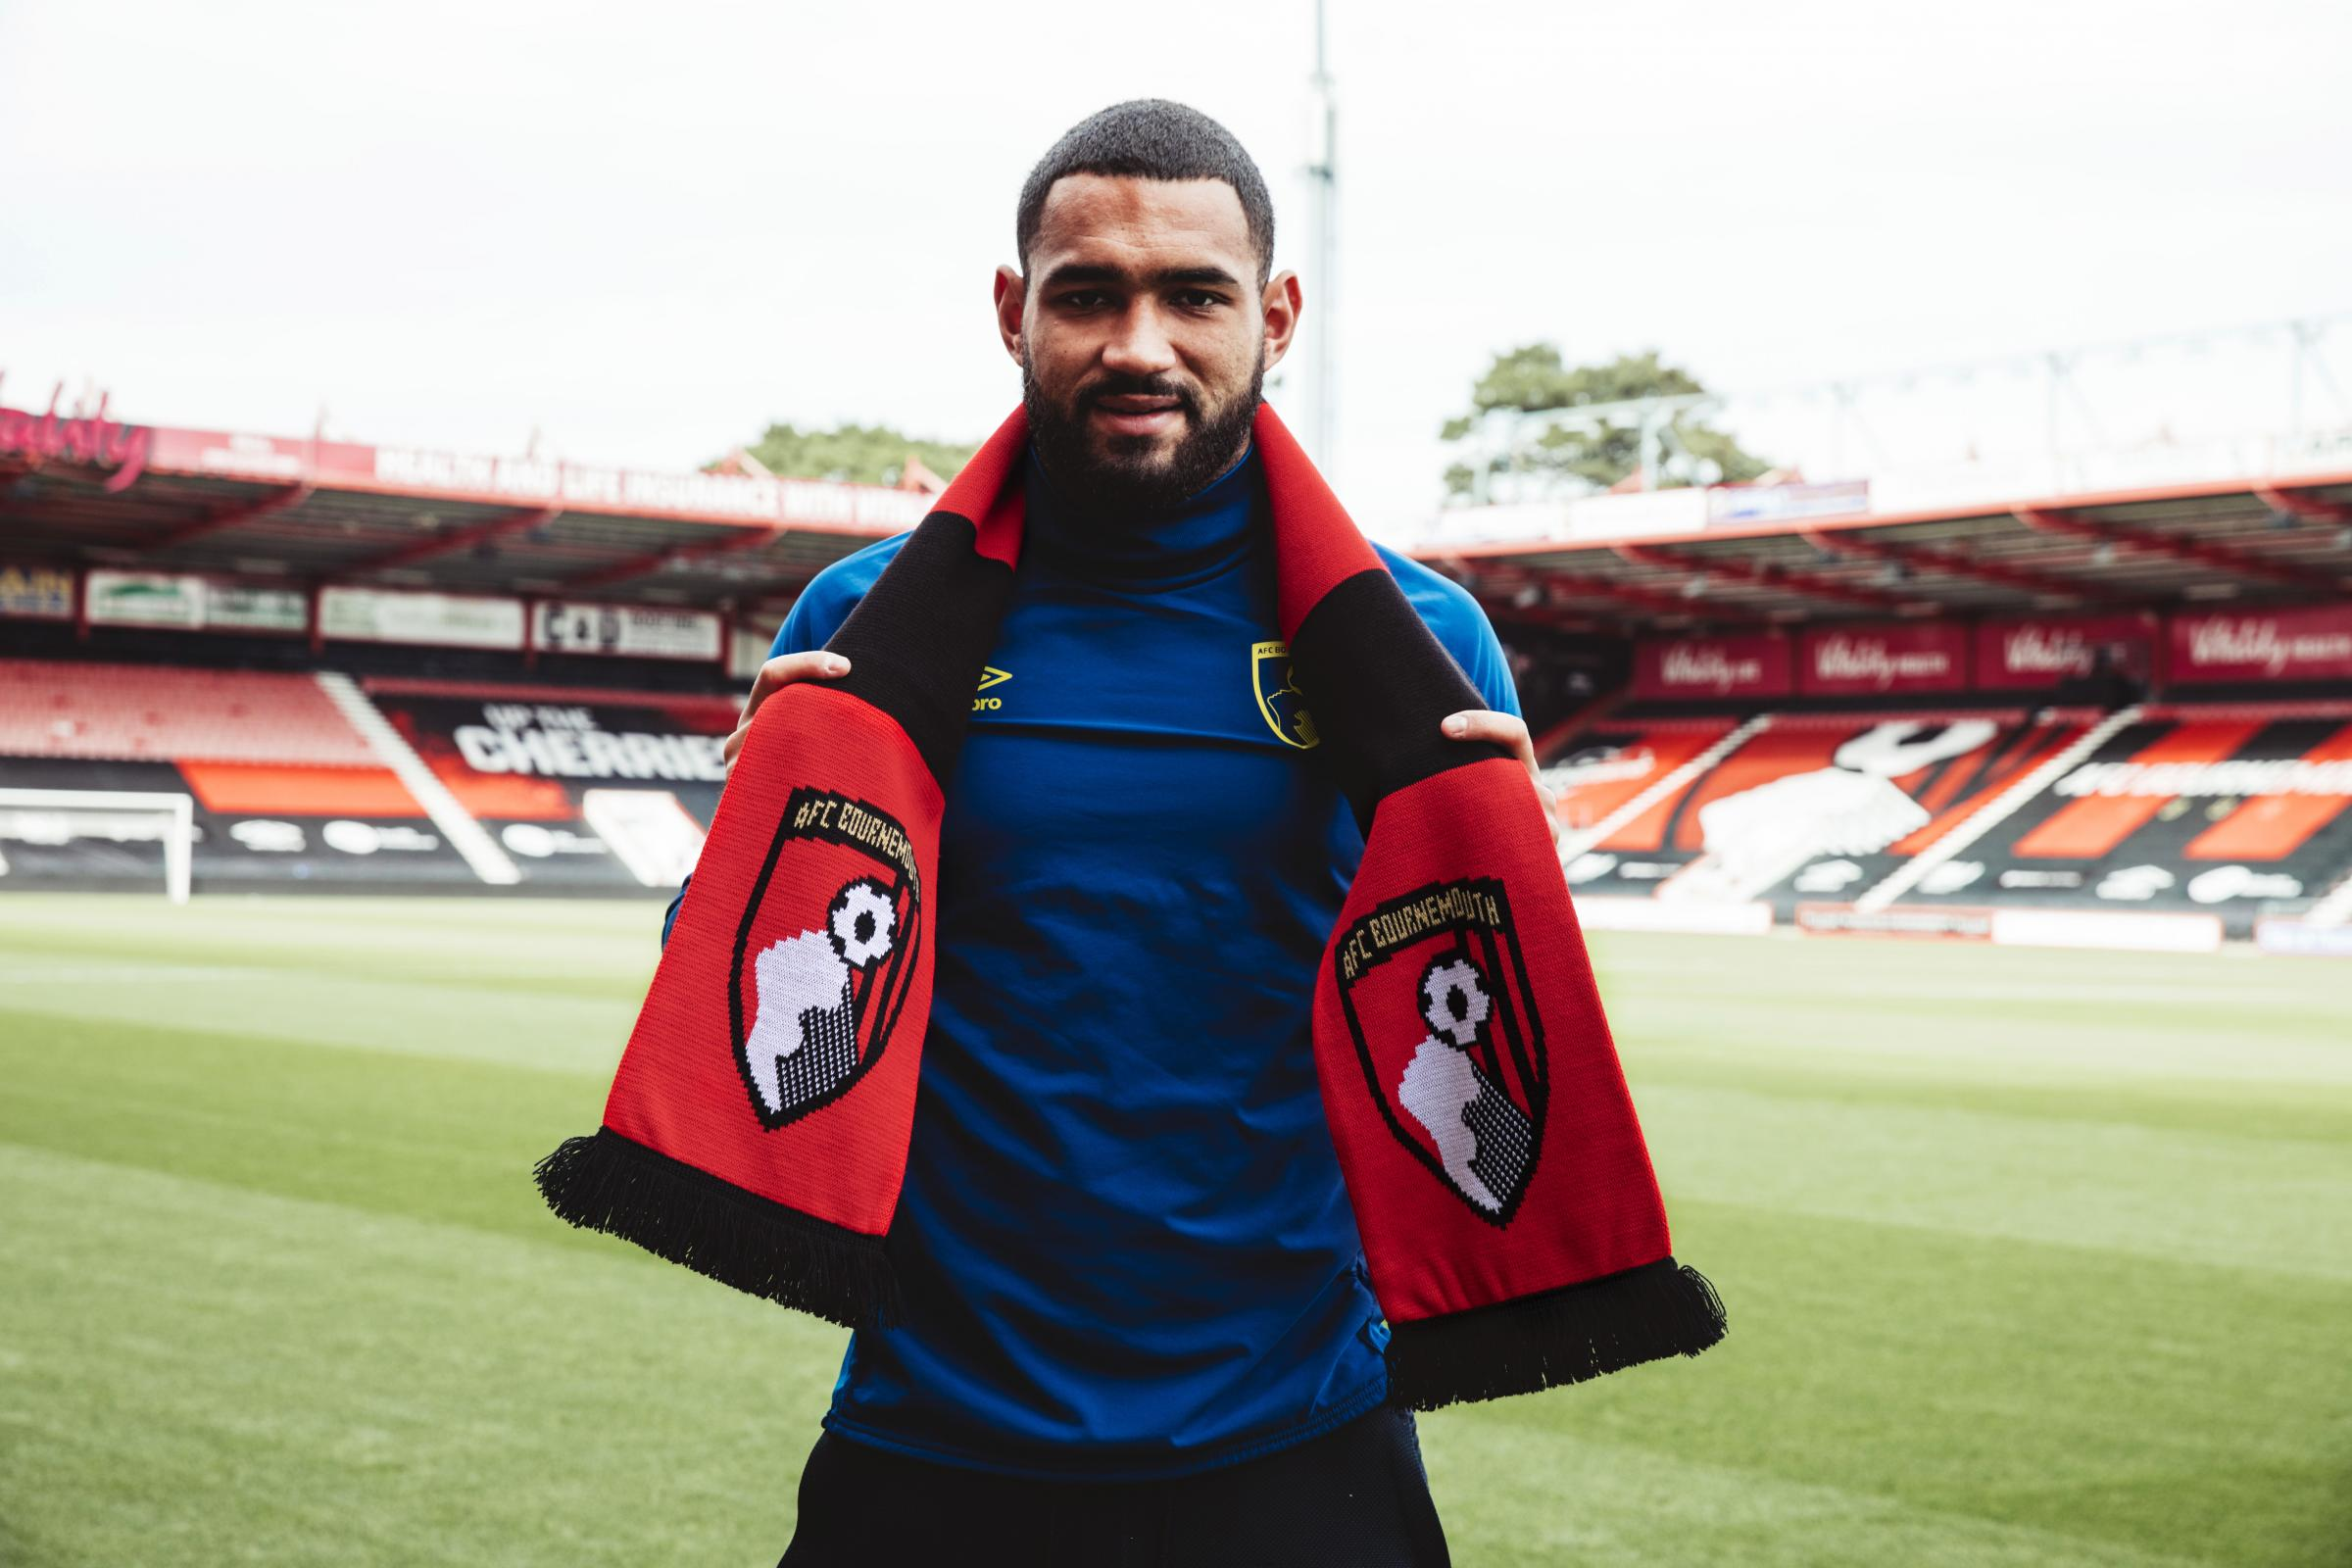 Carter-Vickers is 'not far away' from match action | Bournemouth Echo